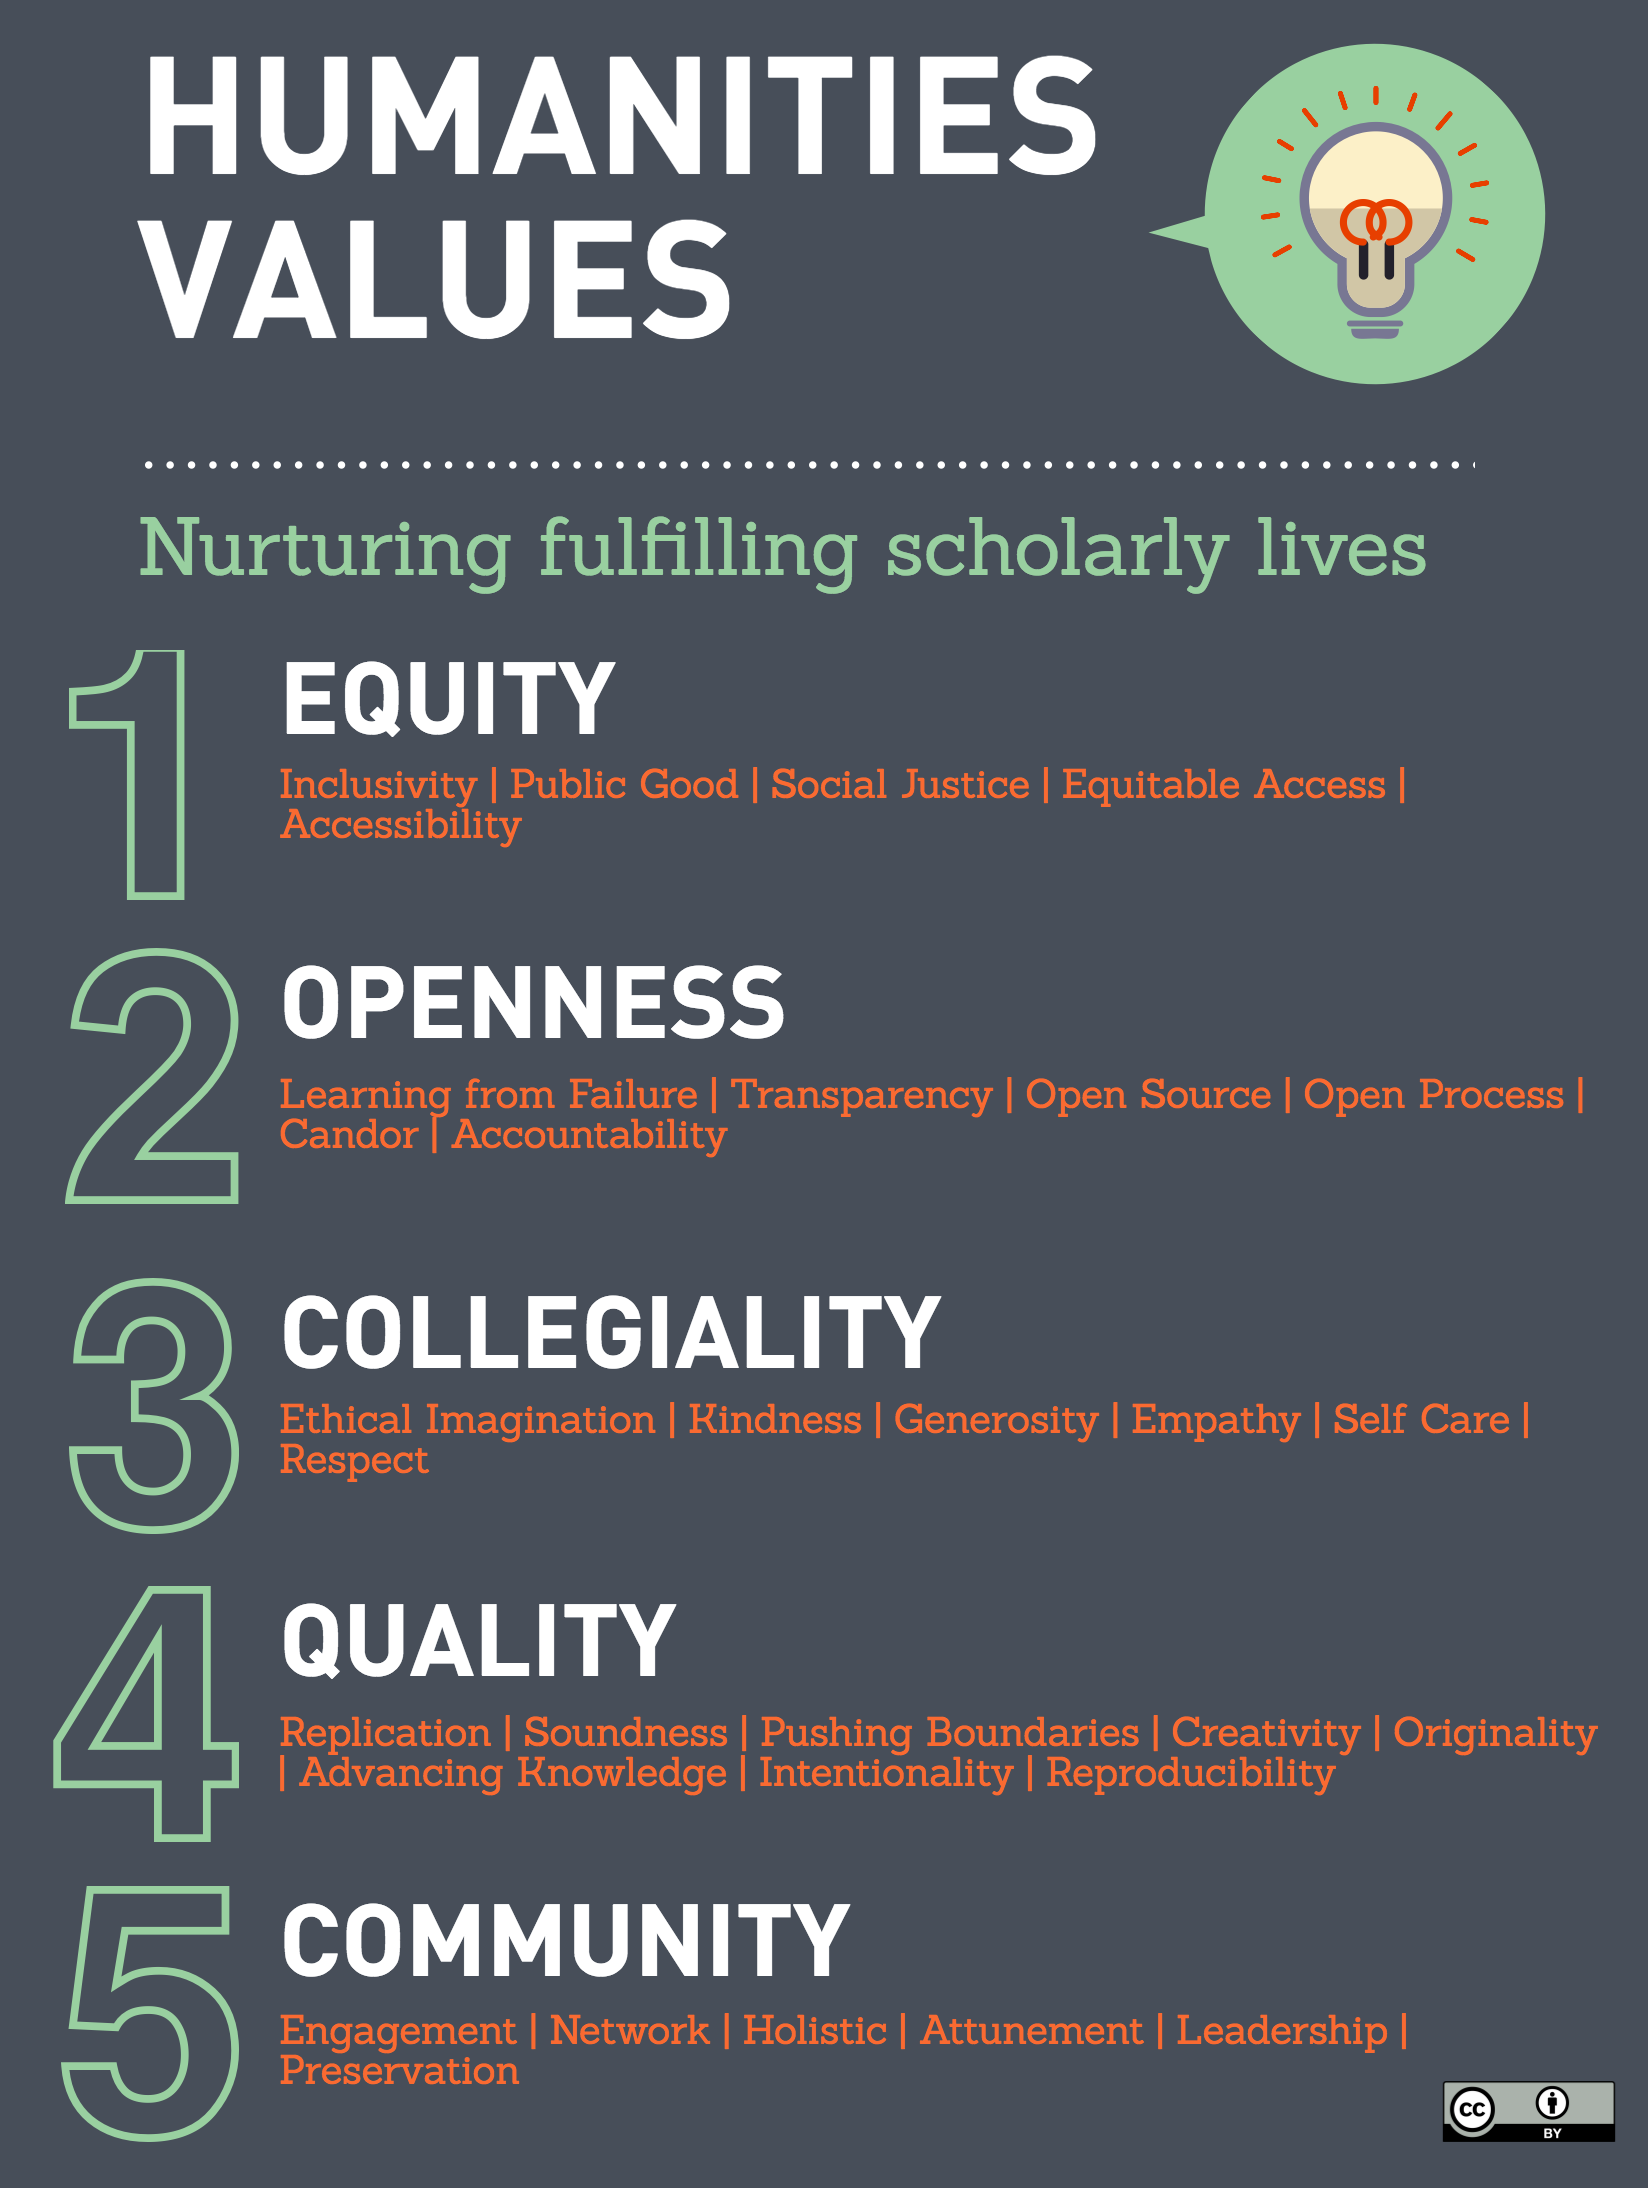 Humanities Values 1. Equity, 2. Openness, 3. Collegiality, 4. Quality, 5. Community